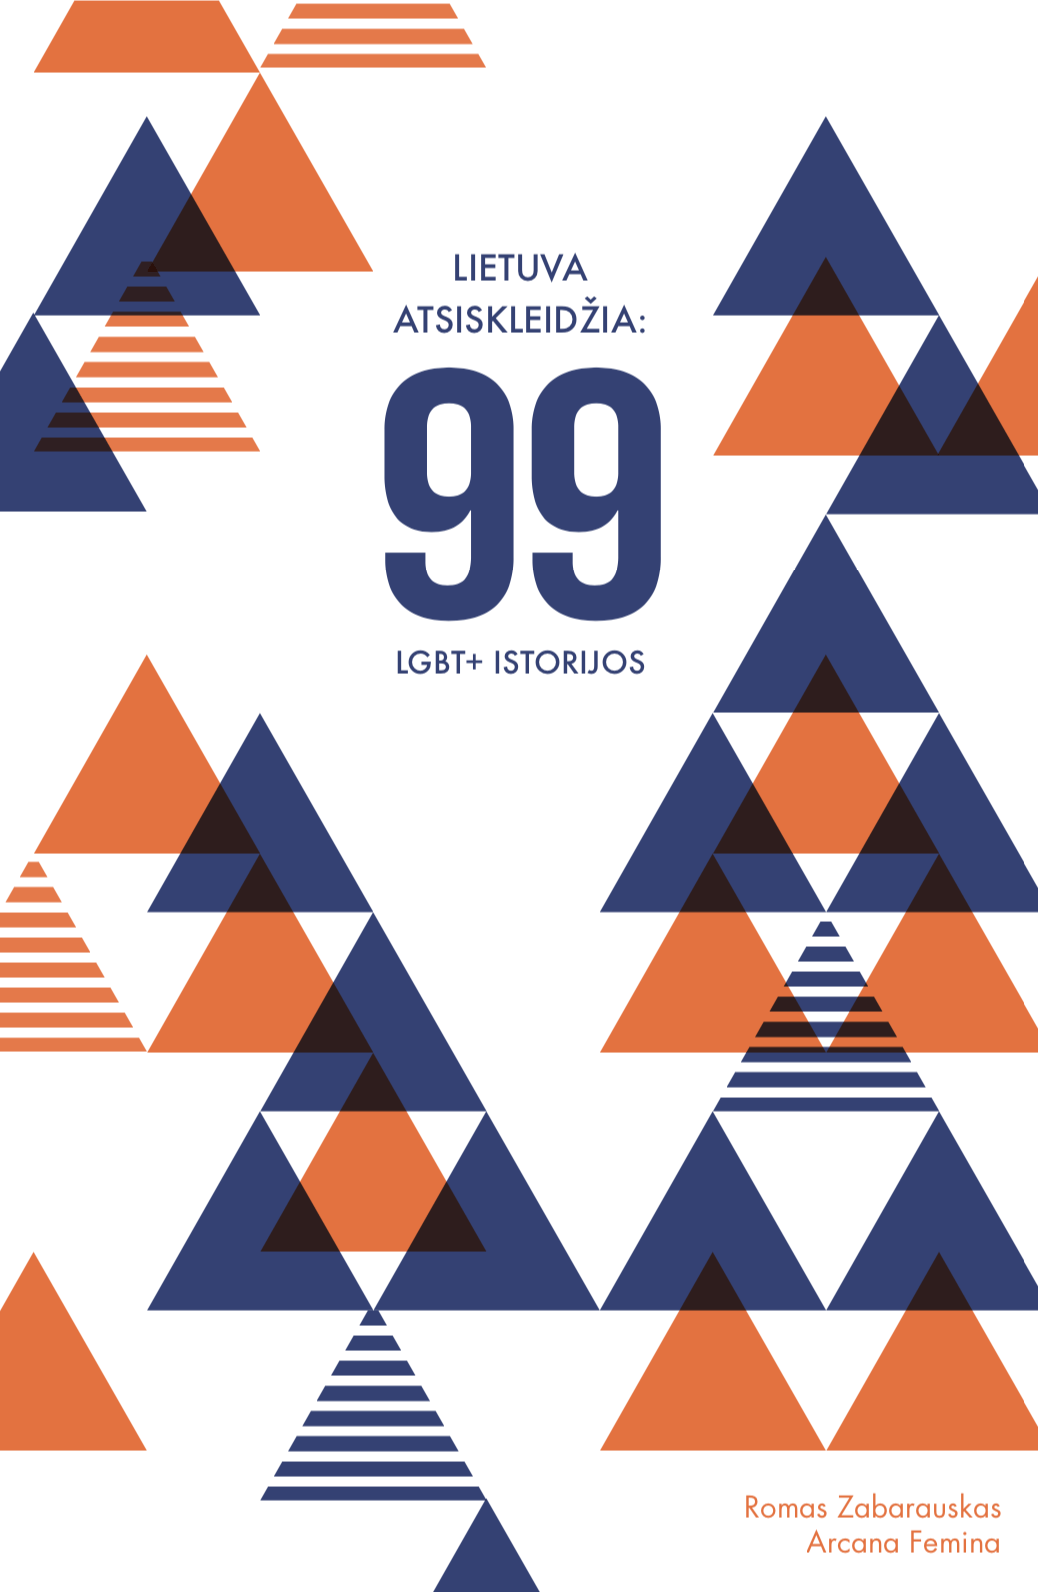 Cover of the book 99 LGBT stories, Lithuania